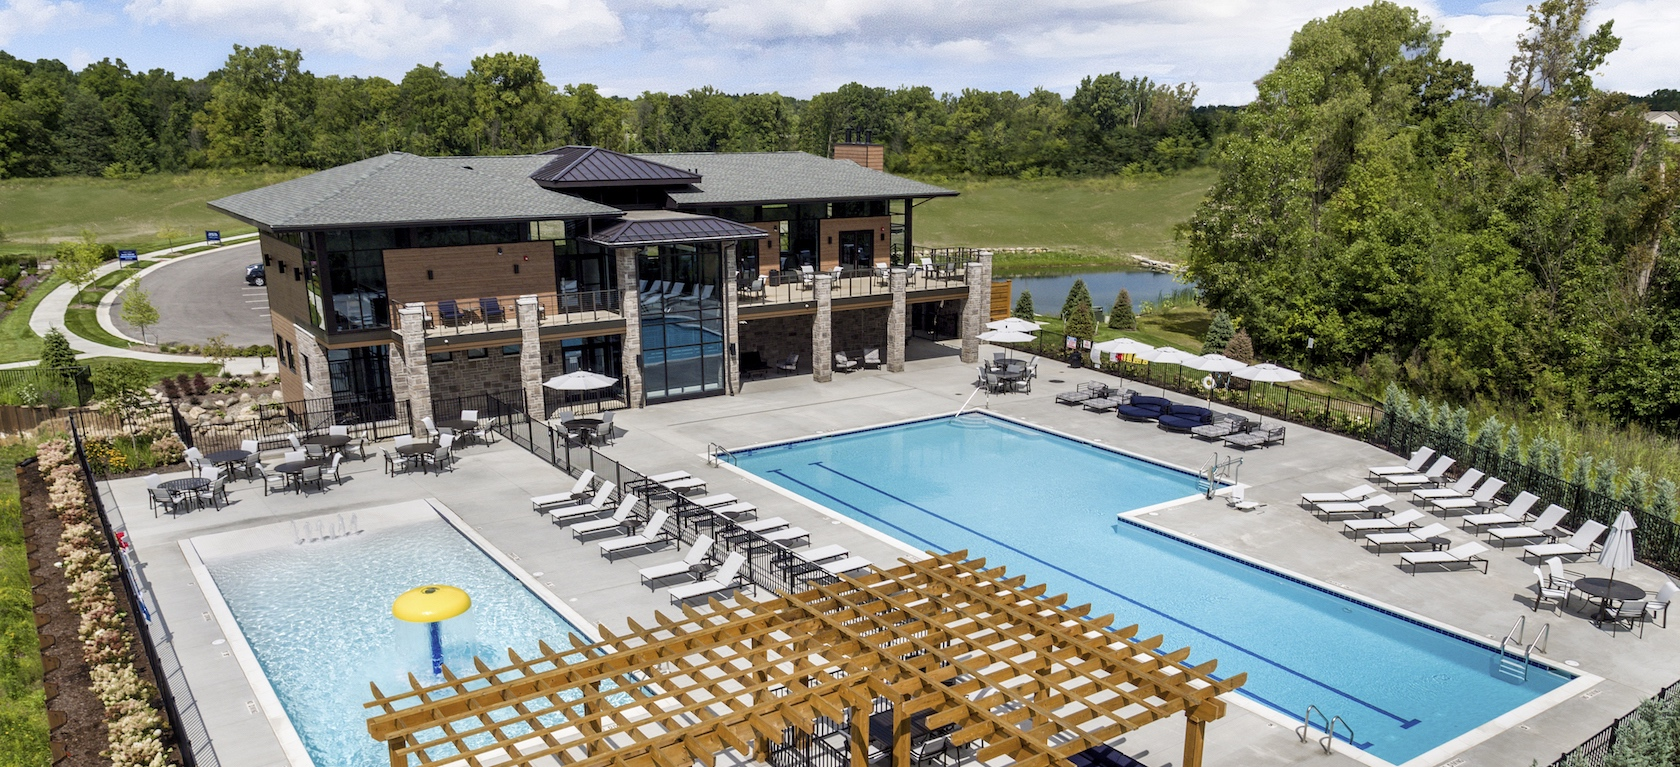 Aerial view of clubhouse and pool at North Oaks of Ann Arbor community.